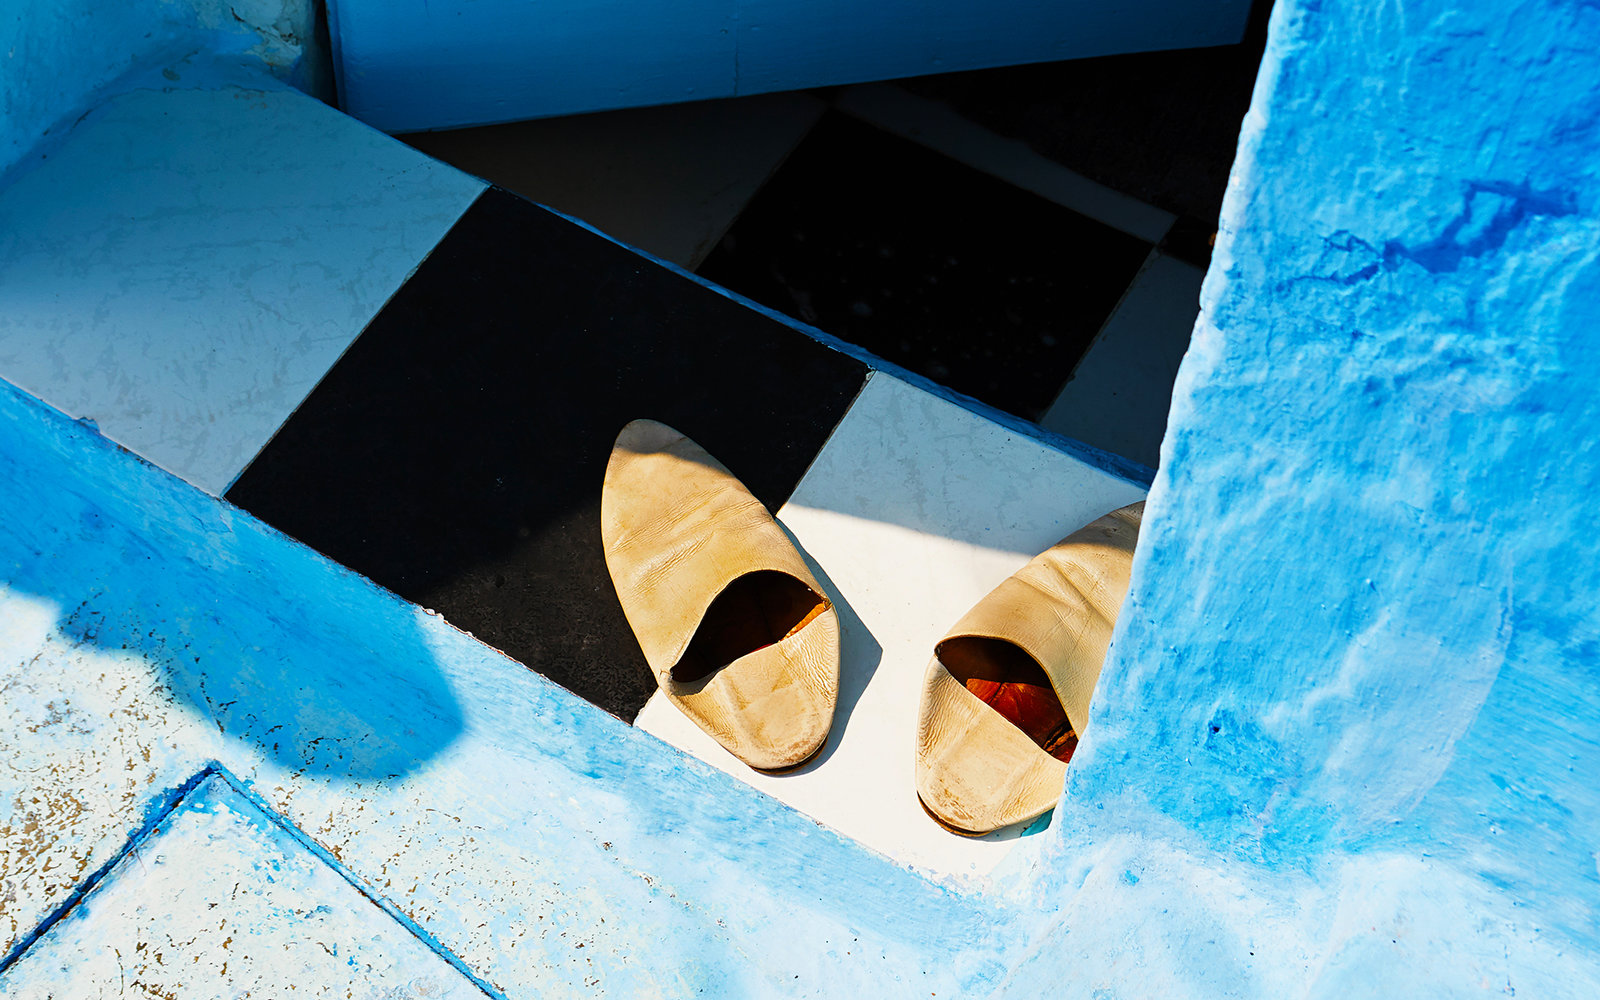 Babouche Slippers in Chefchaouen Morocco